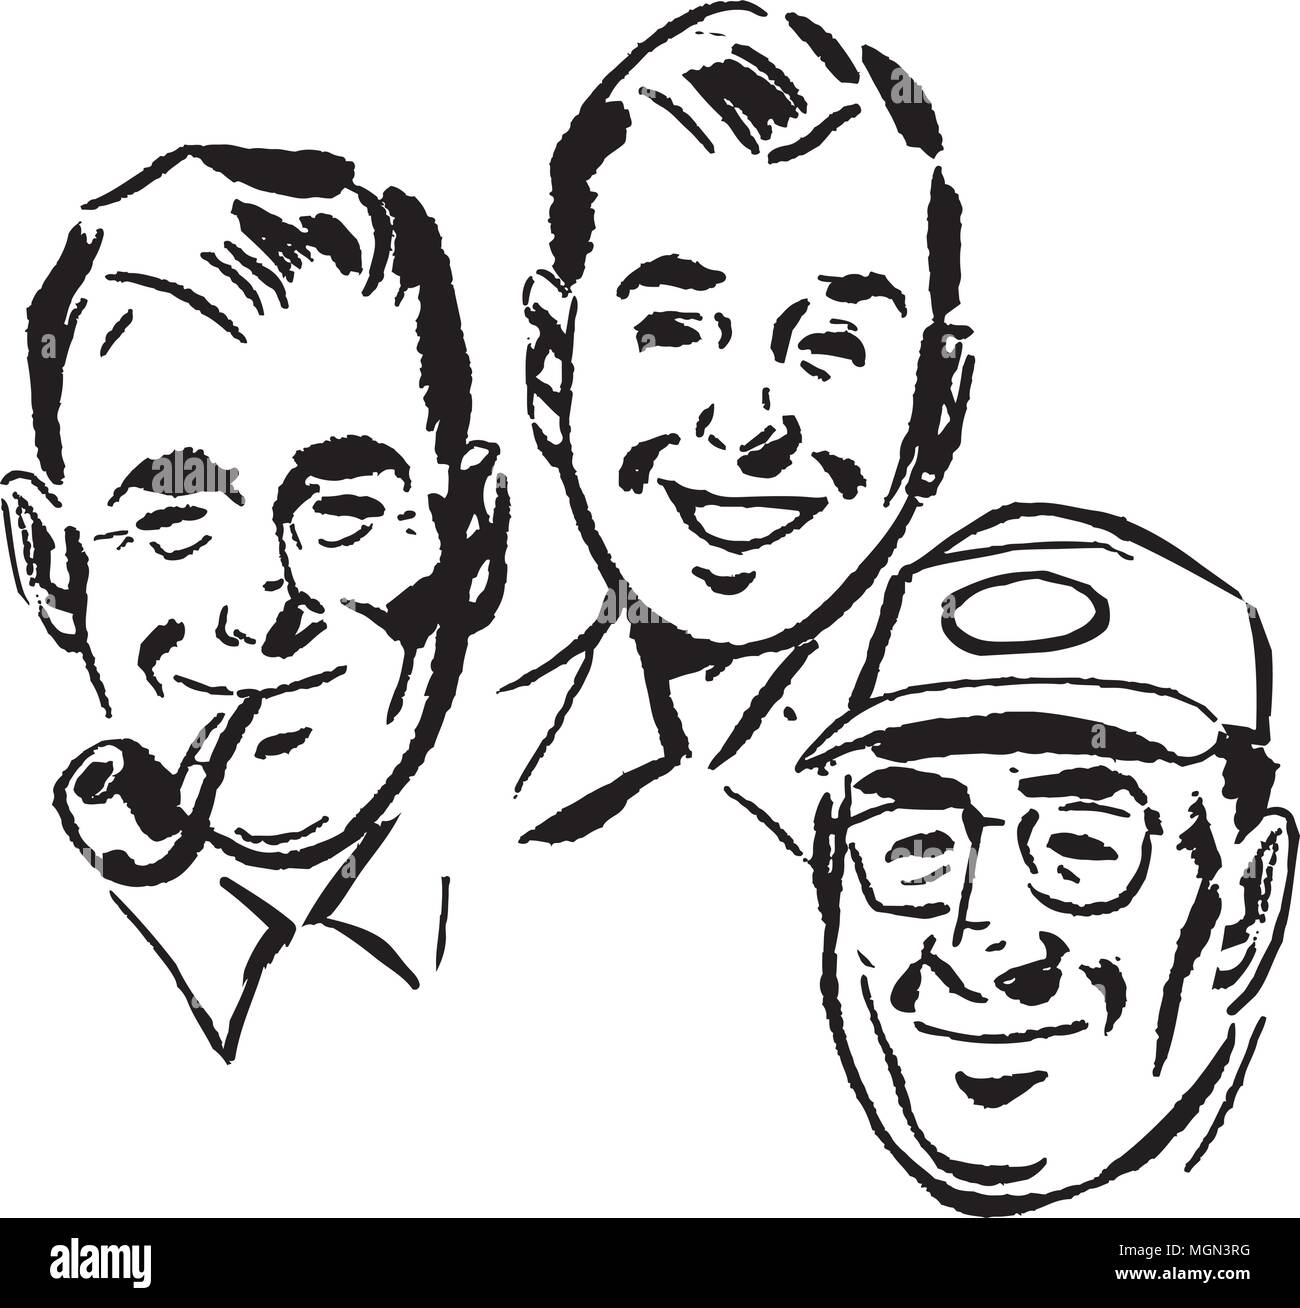 Three Swell Guys - Retro Clipart Illustration - Stock Vector